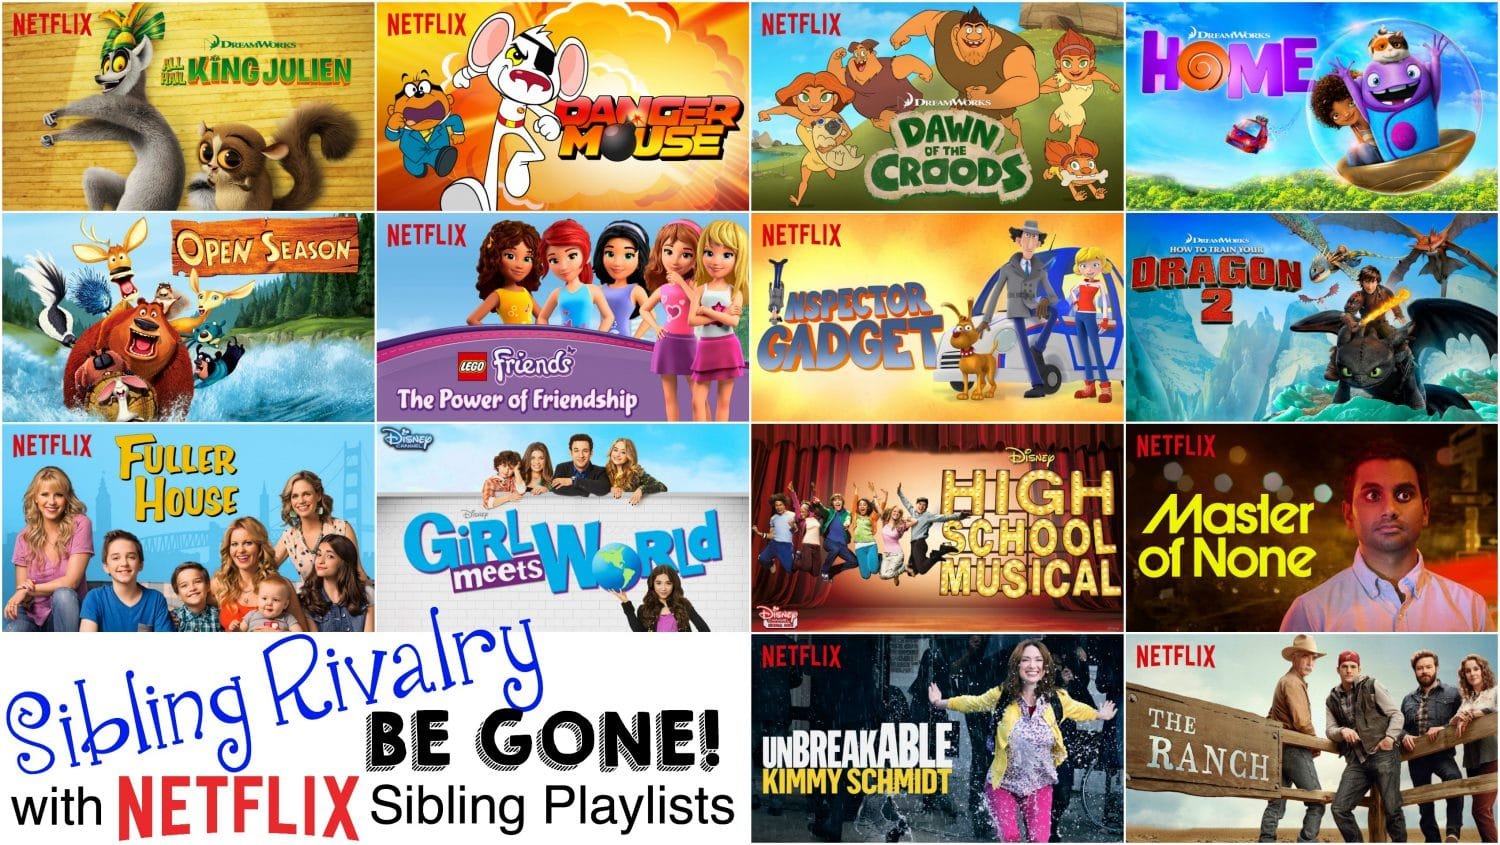 Sibling Rivalry Be Gone with Netflix Siblings Playlists